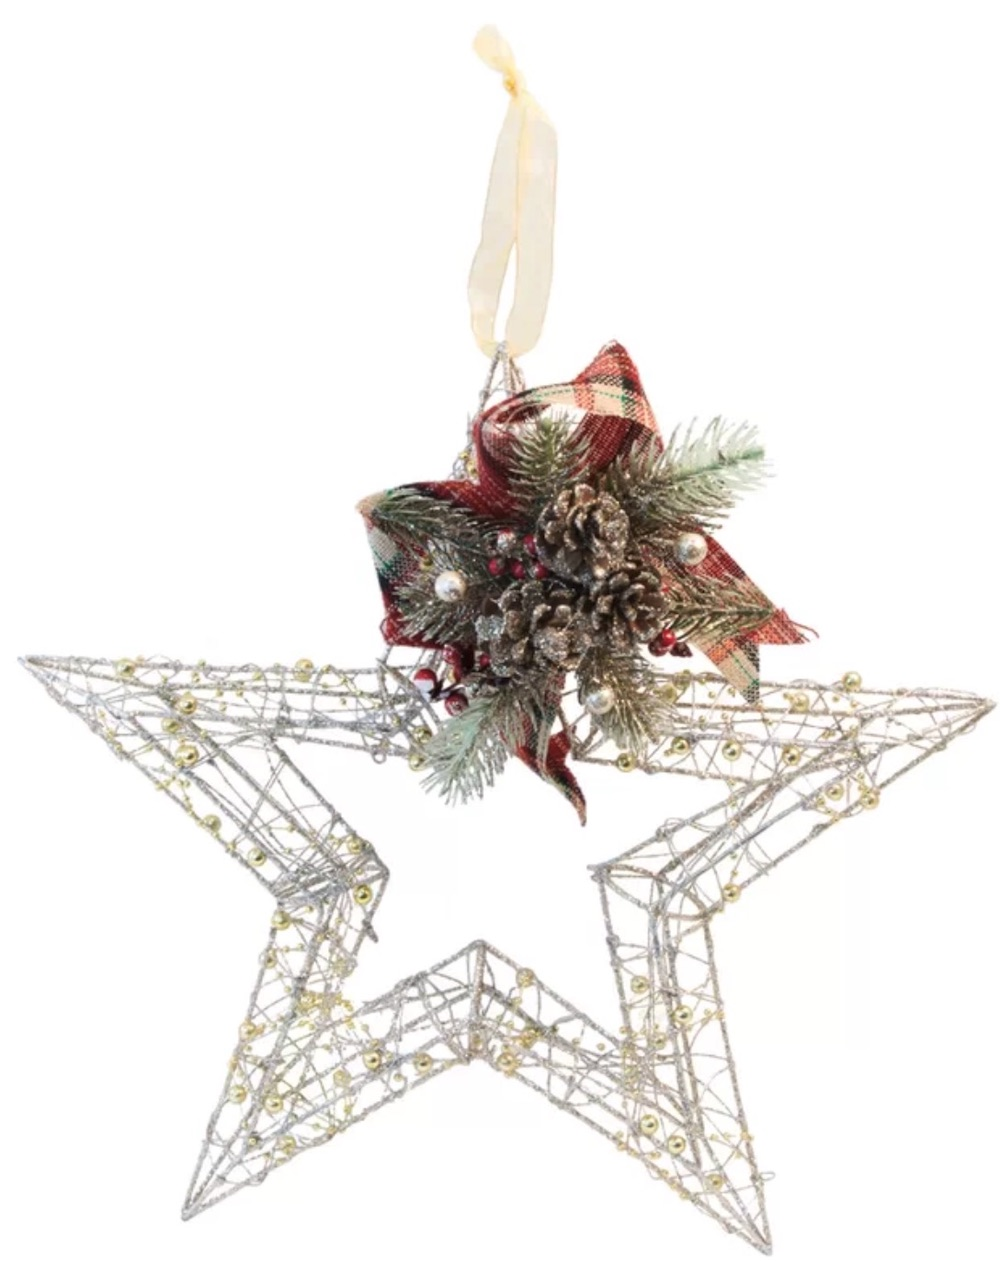 Affordable Christmas Accents Ferretti Wire Star Figurine #Decor #ChristmasDecor #AffordableChristmasDecor #Christmas #ChristmasAccents #AffordableDecor